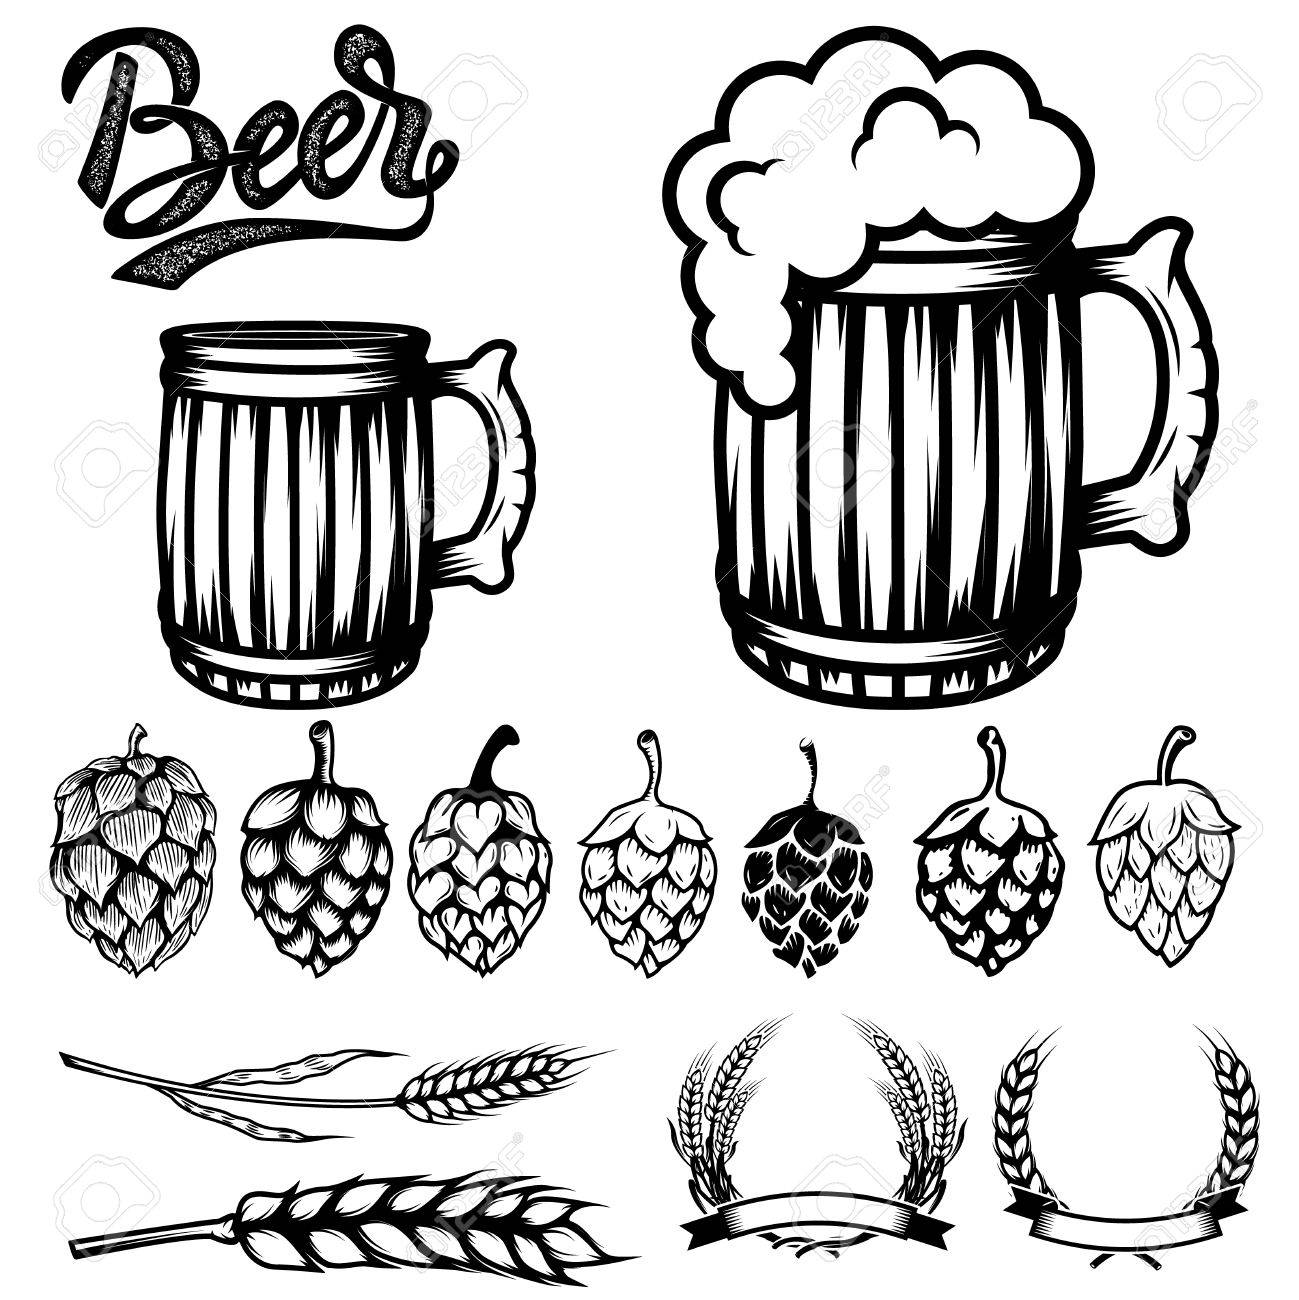 137 Hops free clipart.